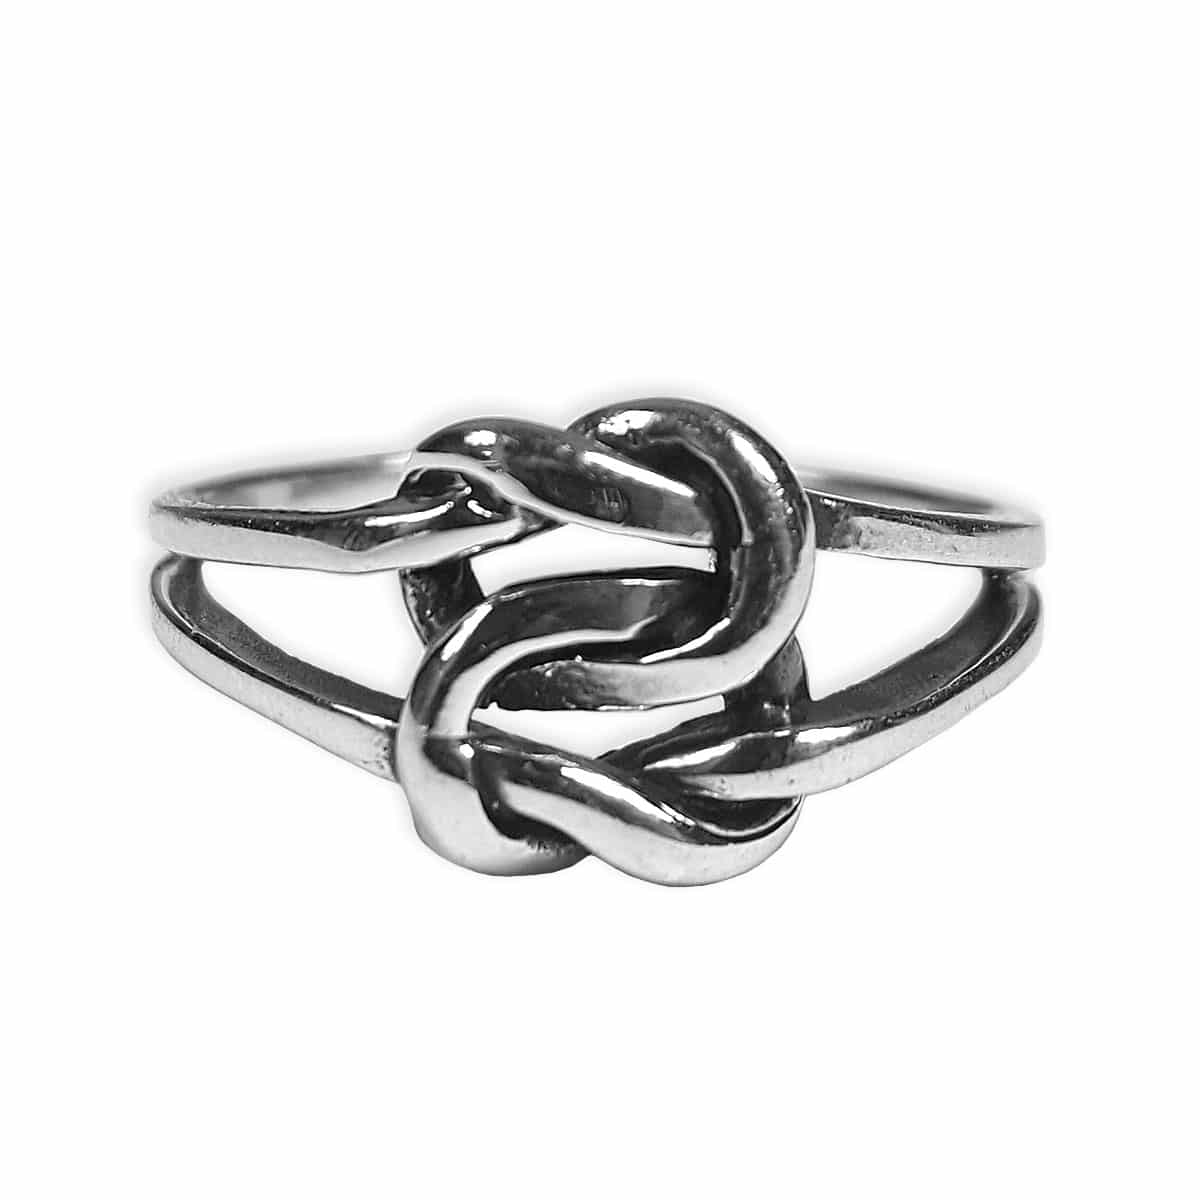 A Celtic love knot ring from the Celtic Croft